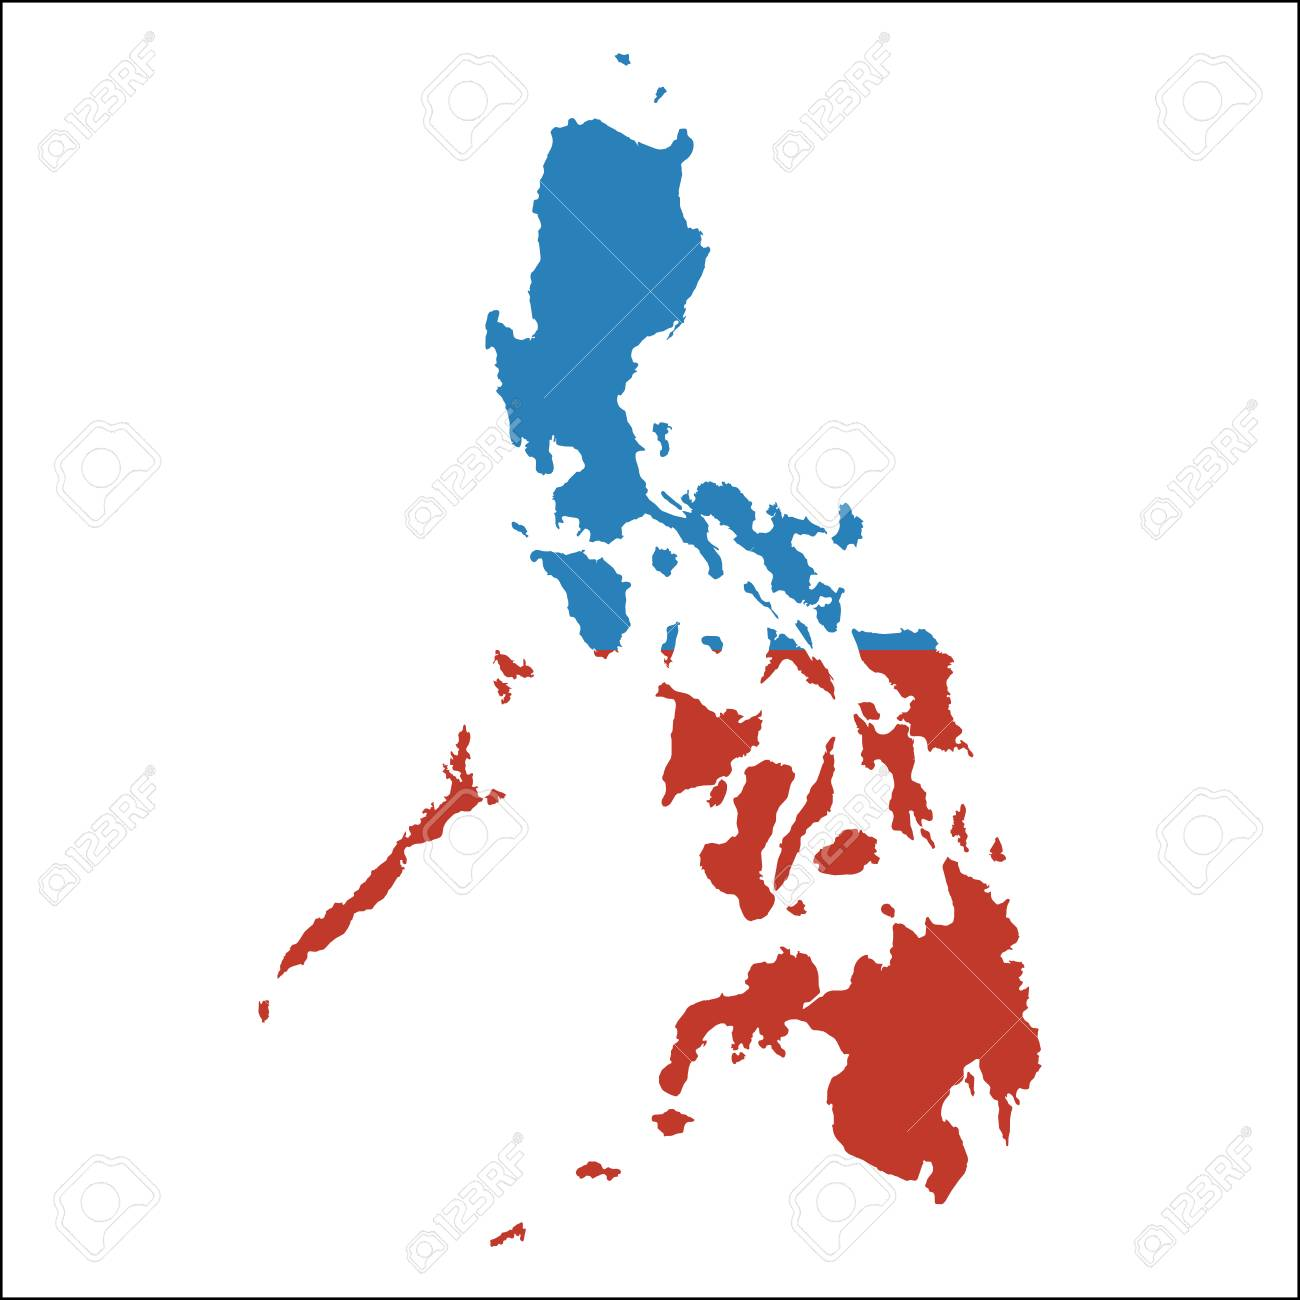 Philippines high resolution map with national flag  Flag of the